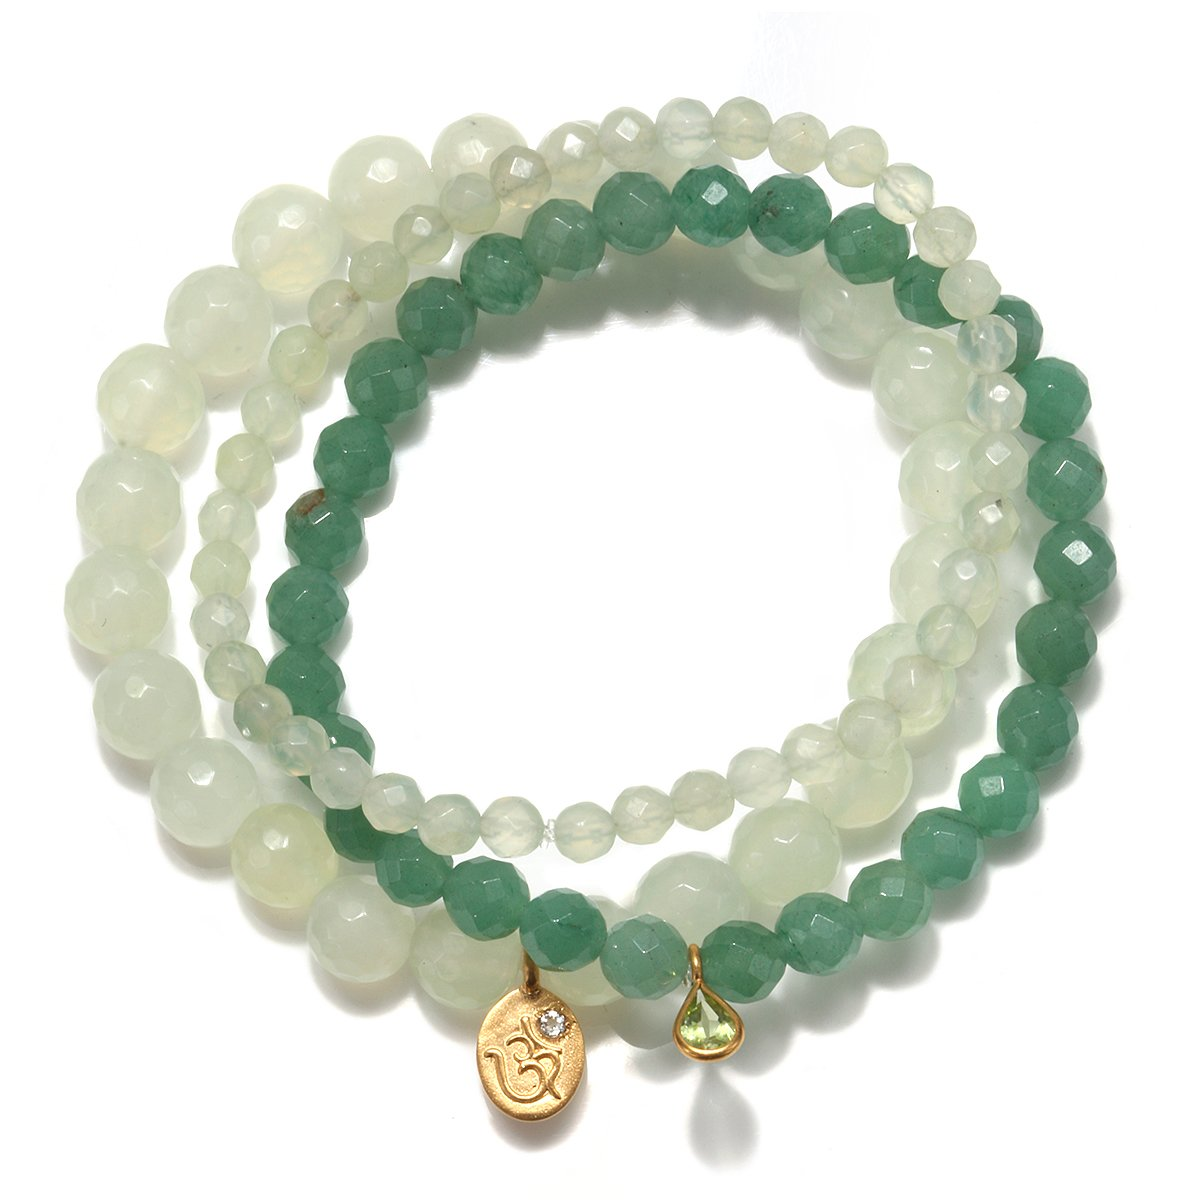 Satya Jewelry Womens New Jade Gold Om Stretch Bracelet Set, Green, One Size